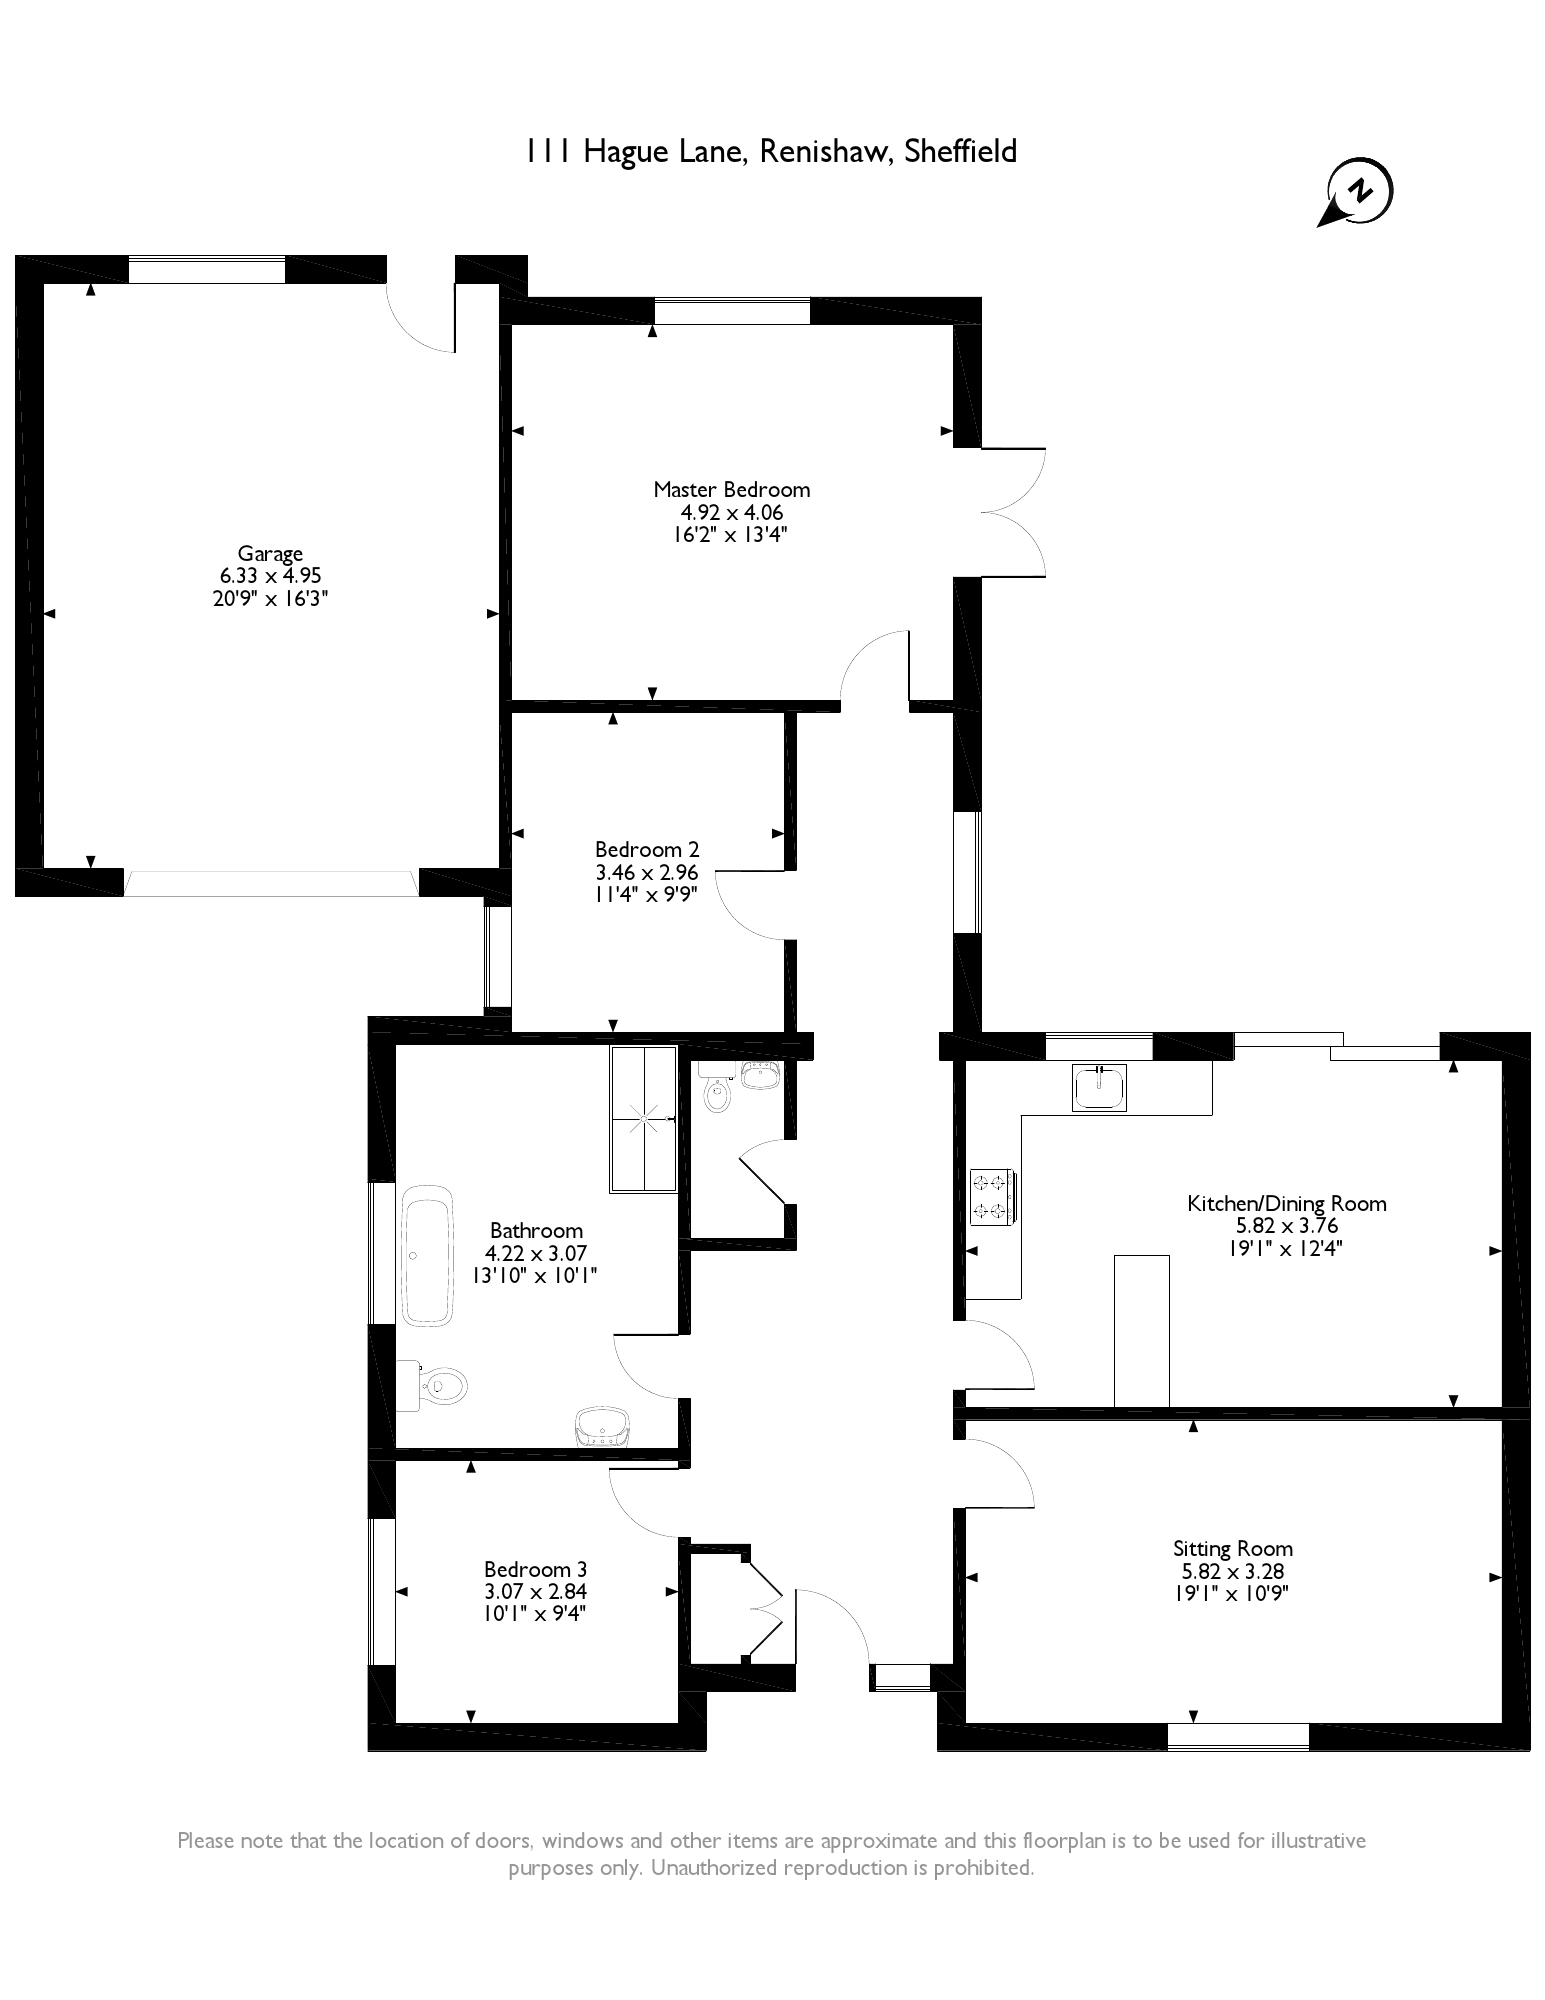 Hague Lane, Renishaw, Sheffield, S21 floor plan